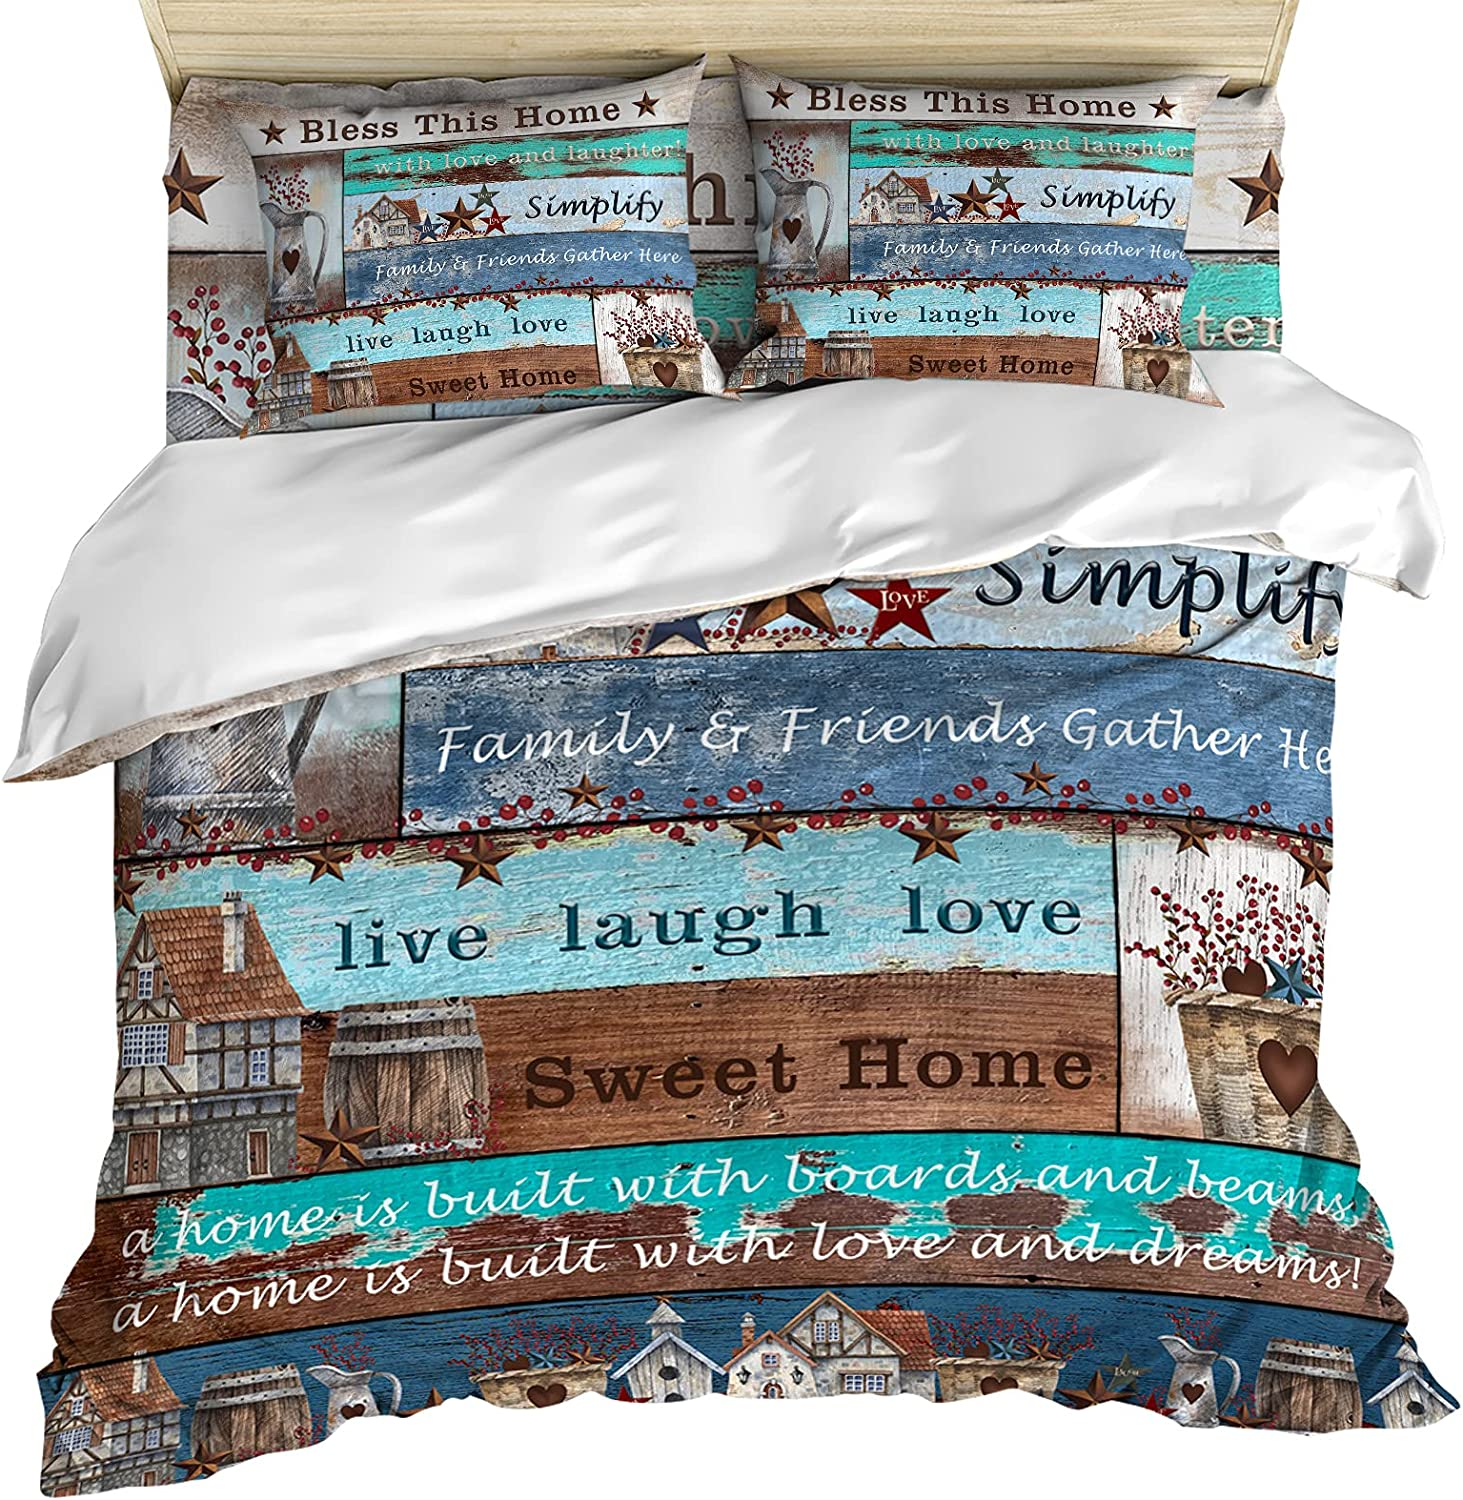 4 Piece Cozy Duvet 2021 autumn and winter new Cover Set Rustic Texas Size Complete Free Shipping Queen S American